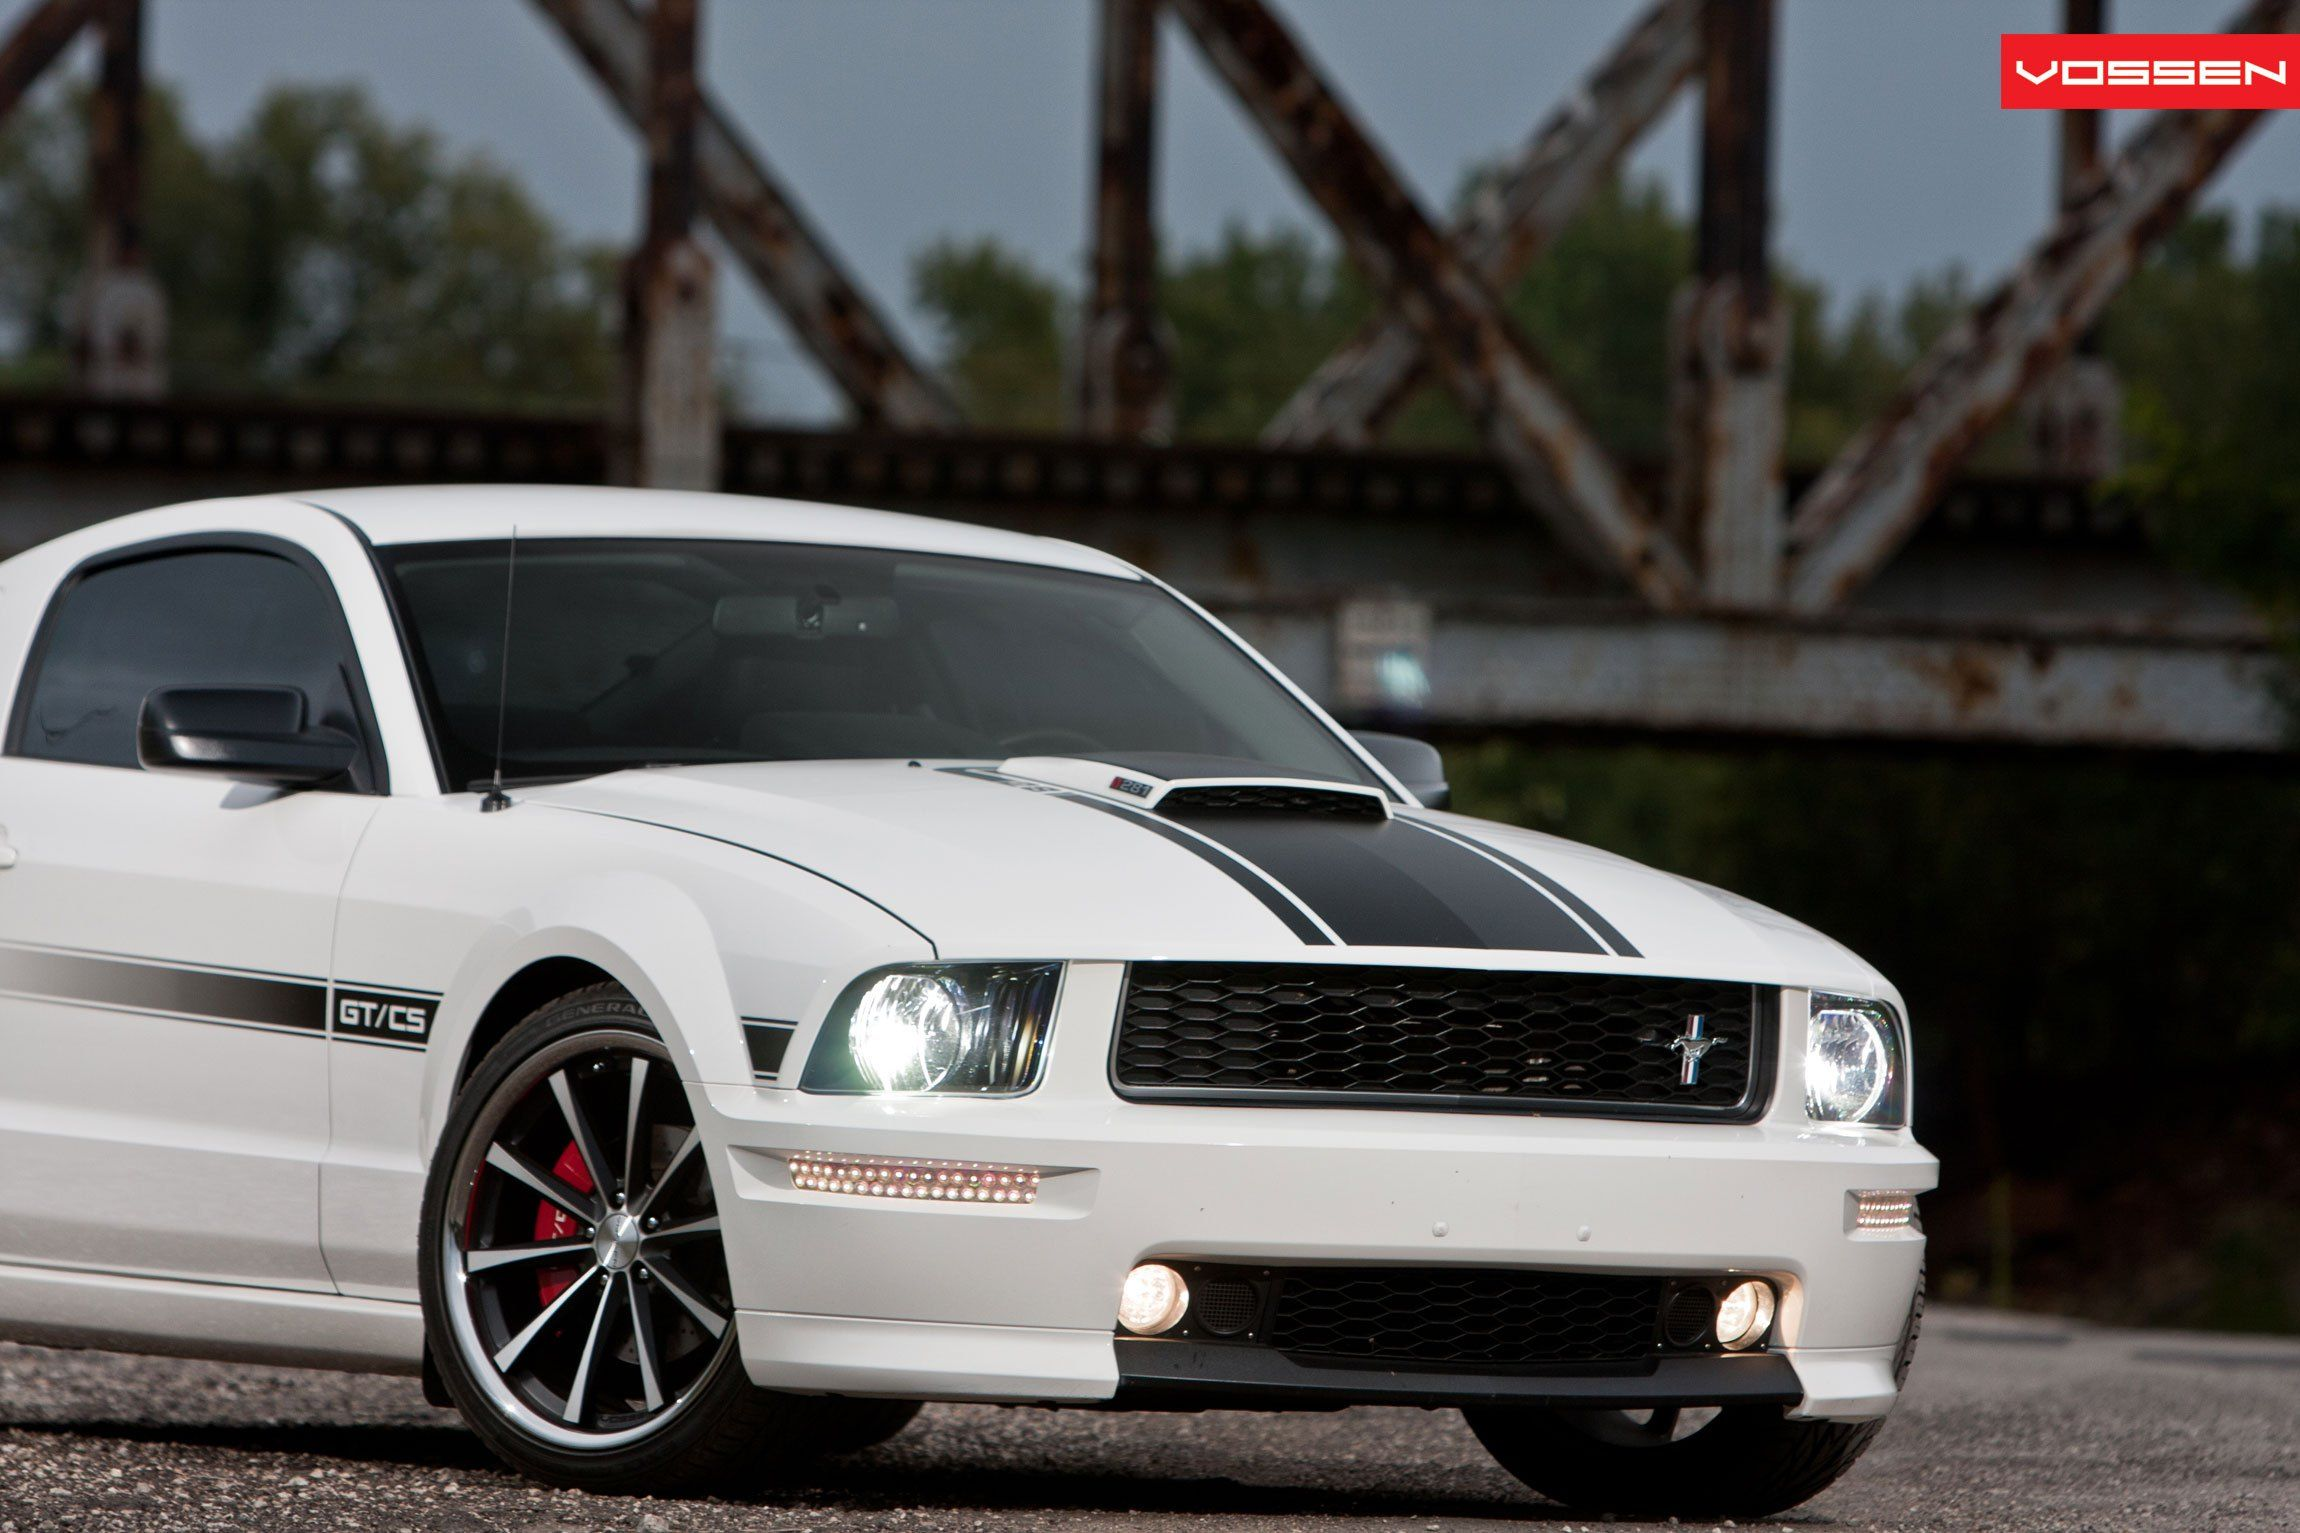 Sports Car Appearance At Its Best Customized White Ford Mustang